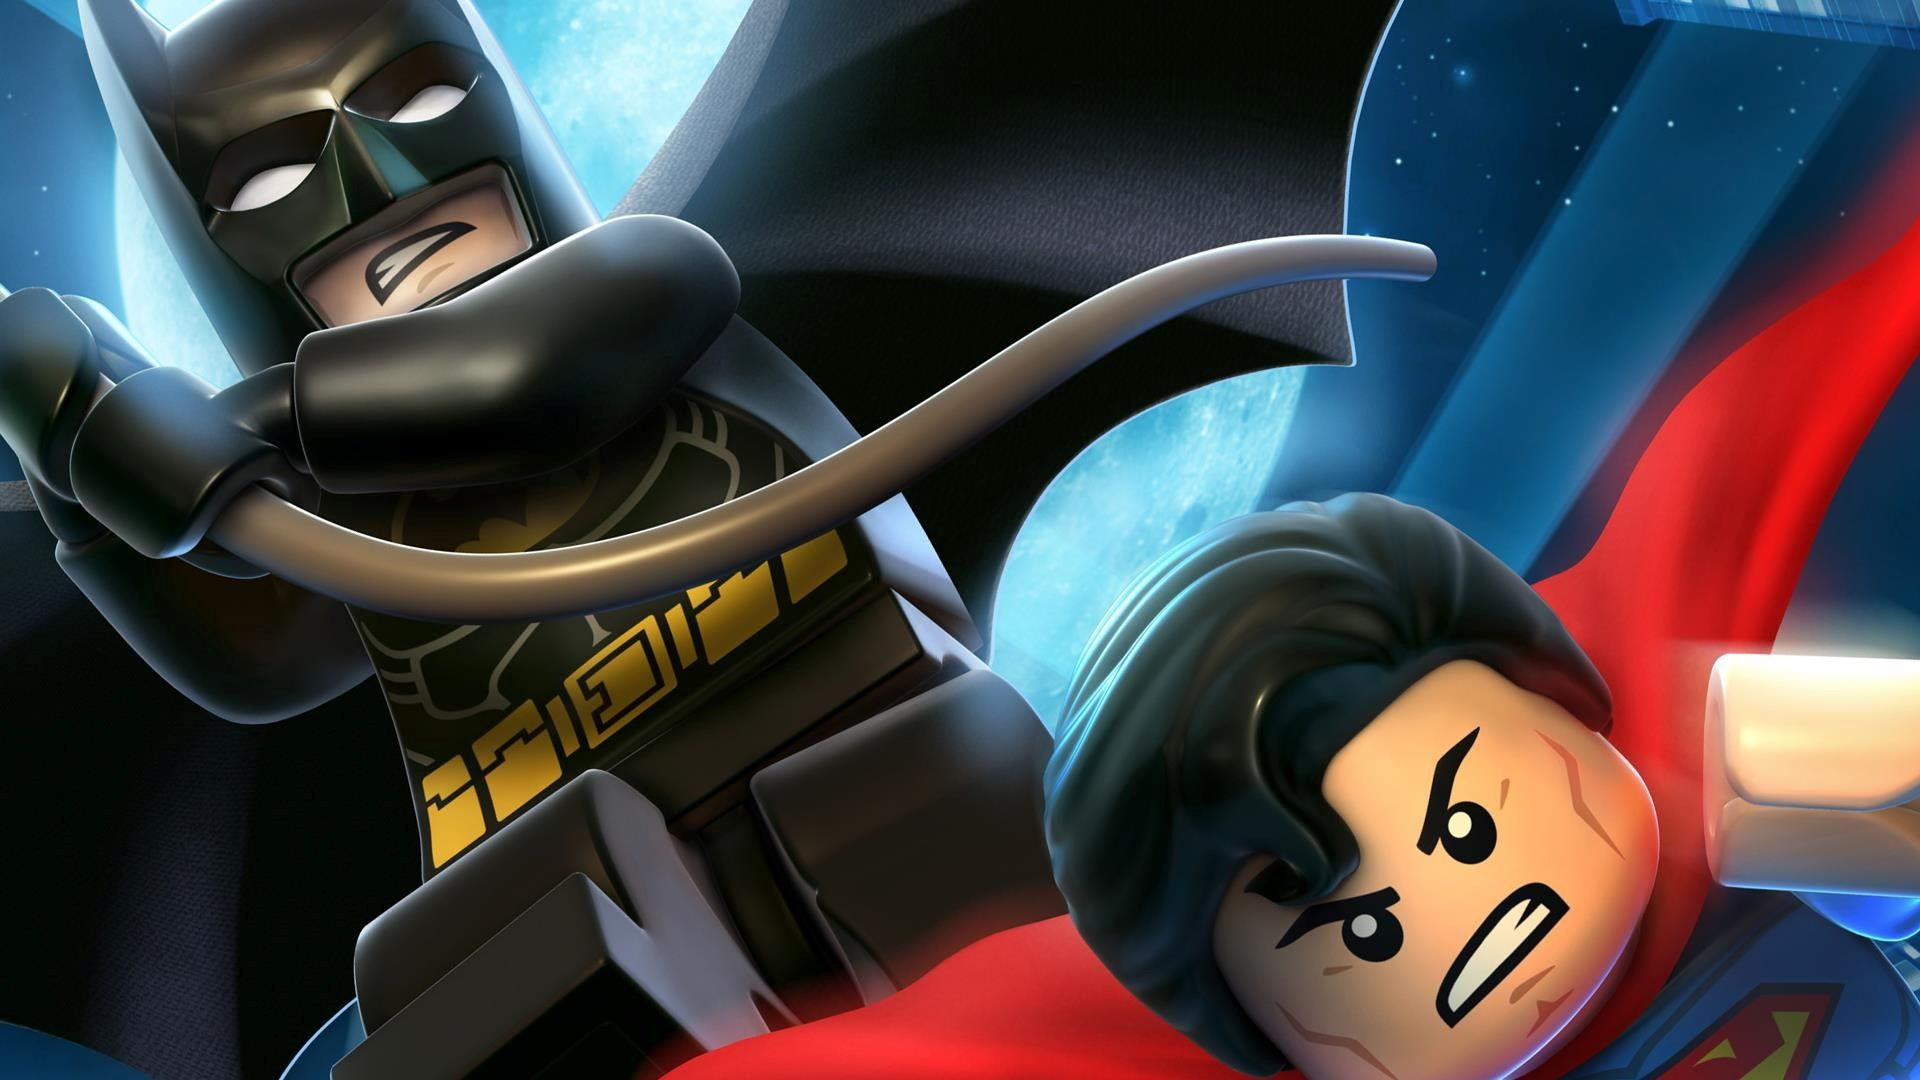 Lego Batman 2 Dc Super Heroes Full Hd Wallpaper Photo